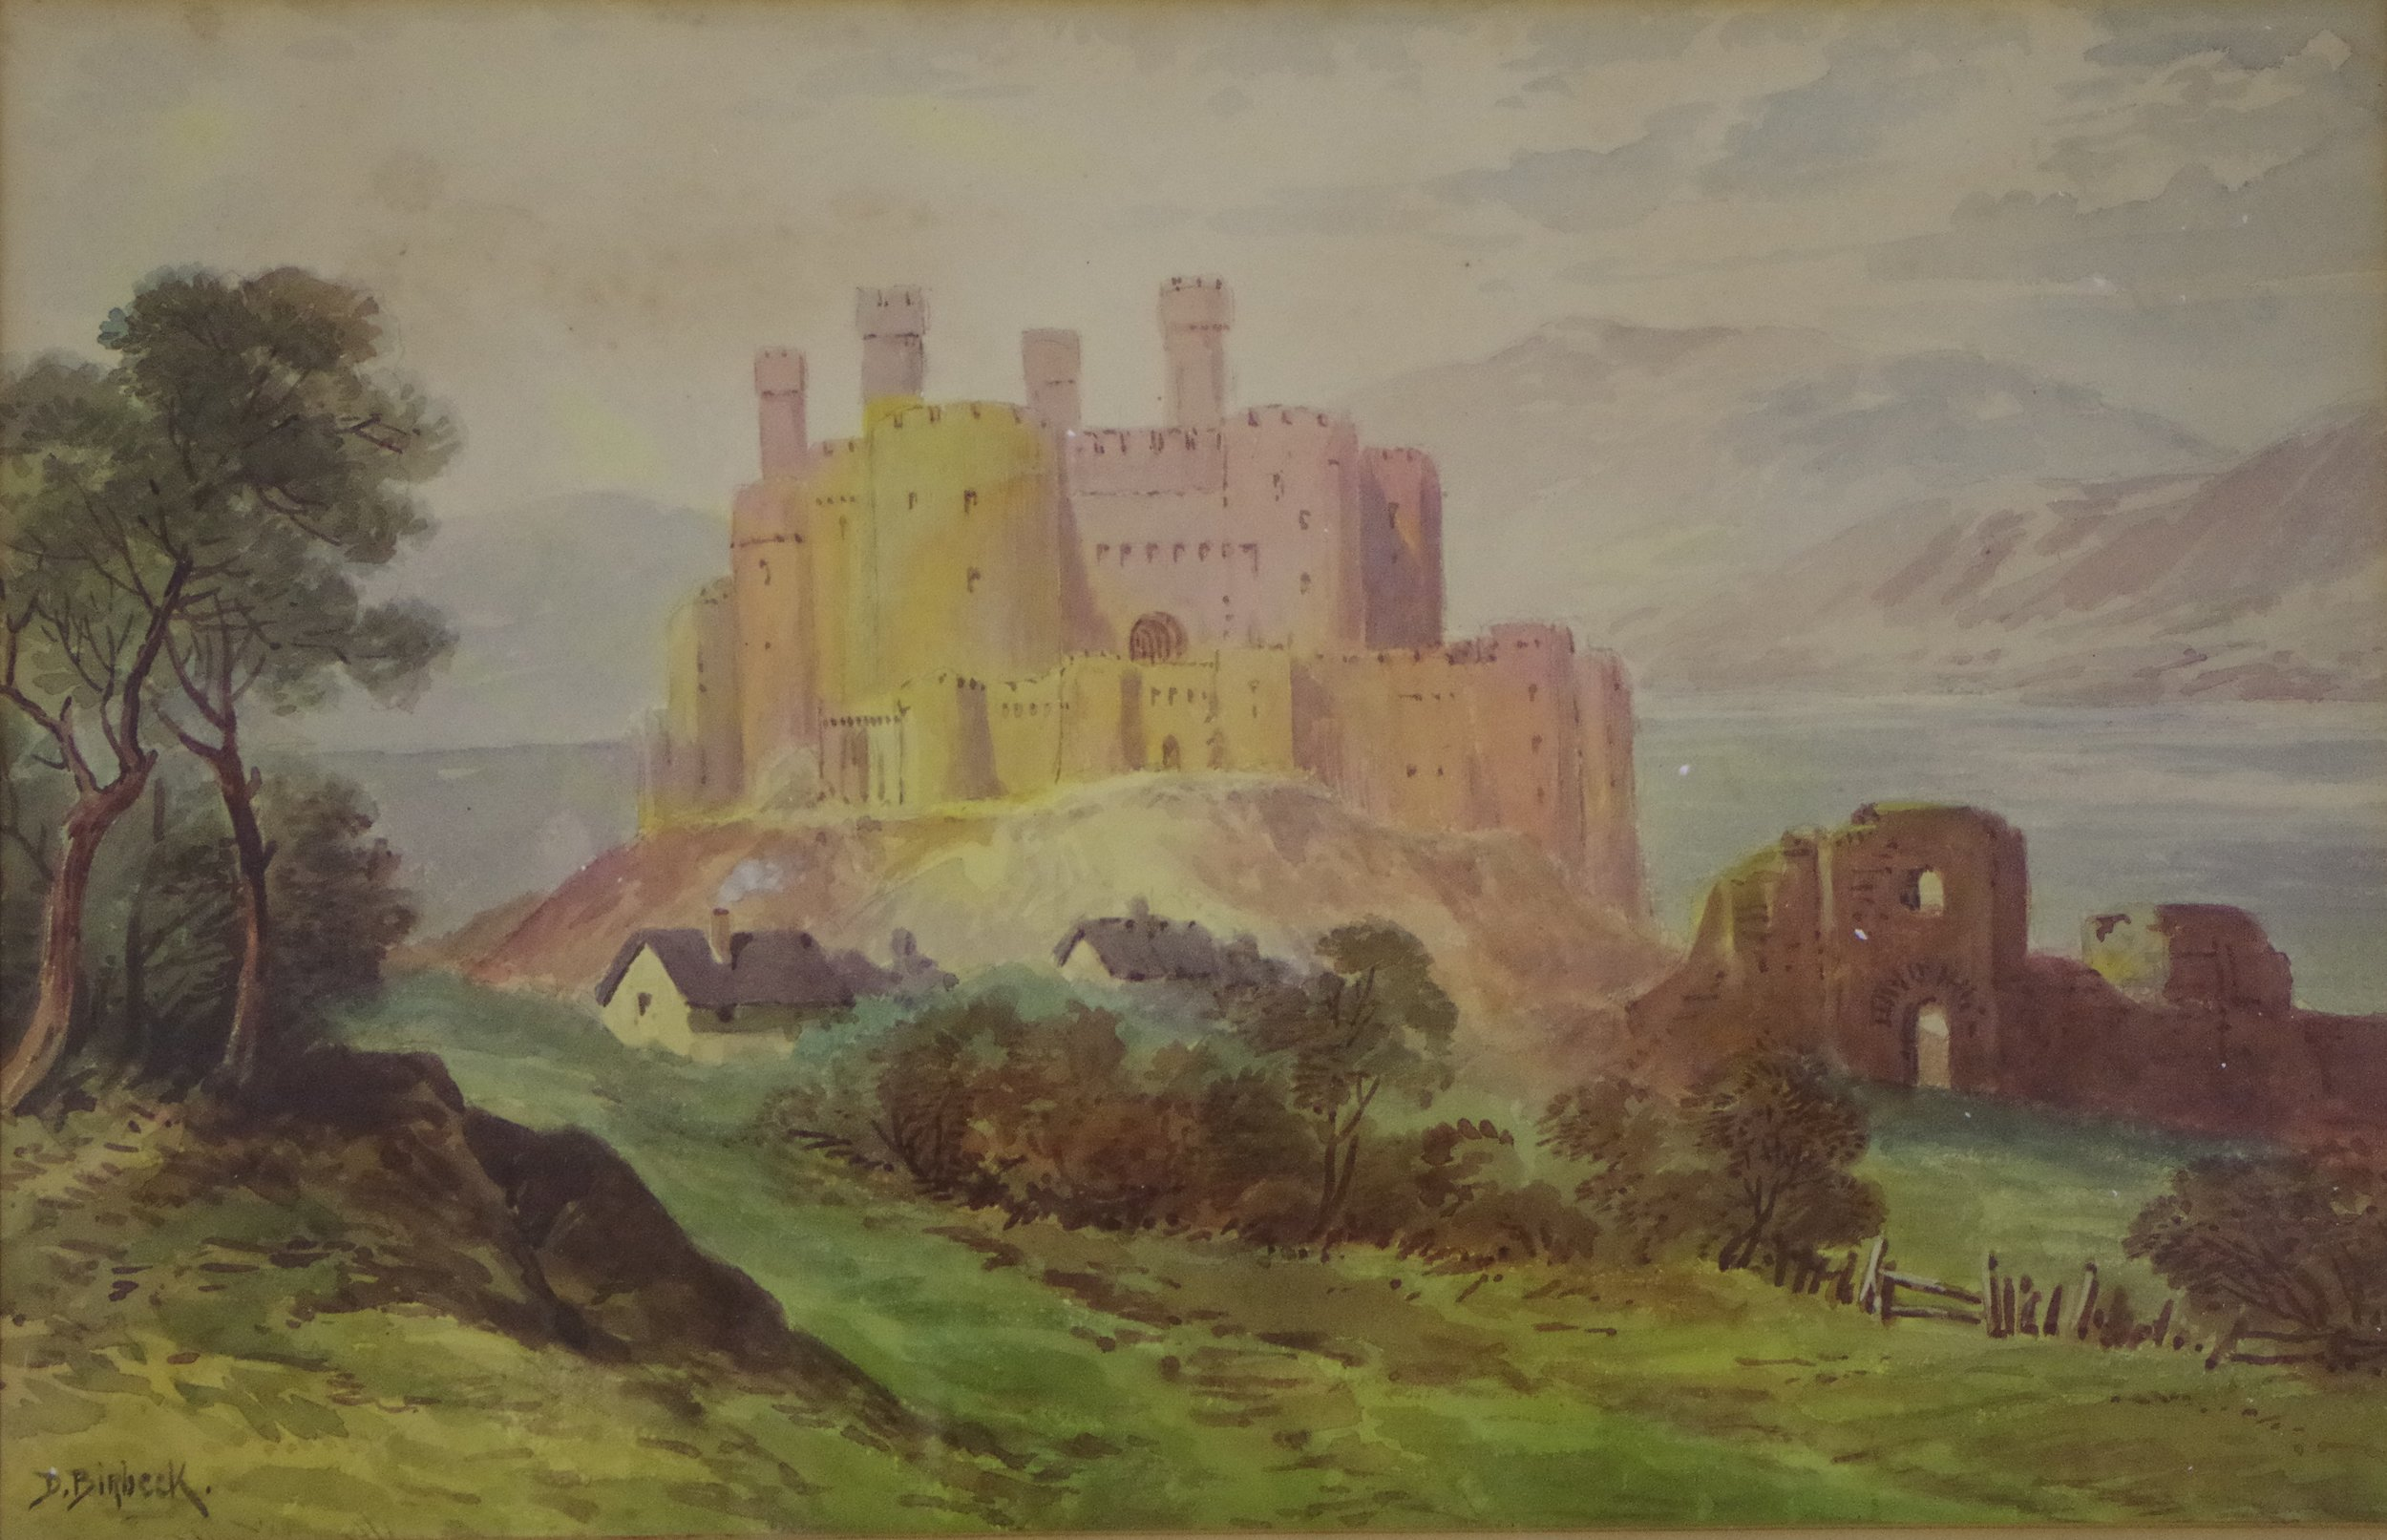 Conway (Conwy) Castle, watercolour by Donald Birbeck